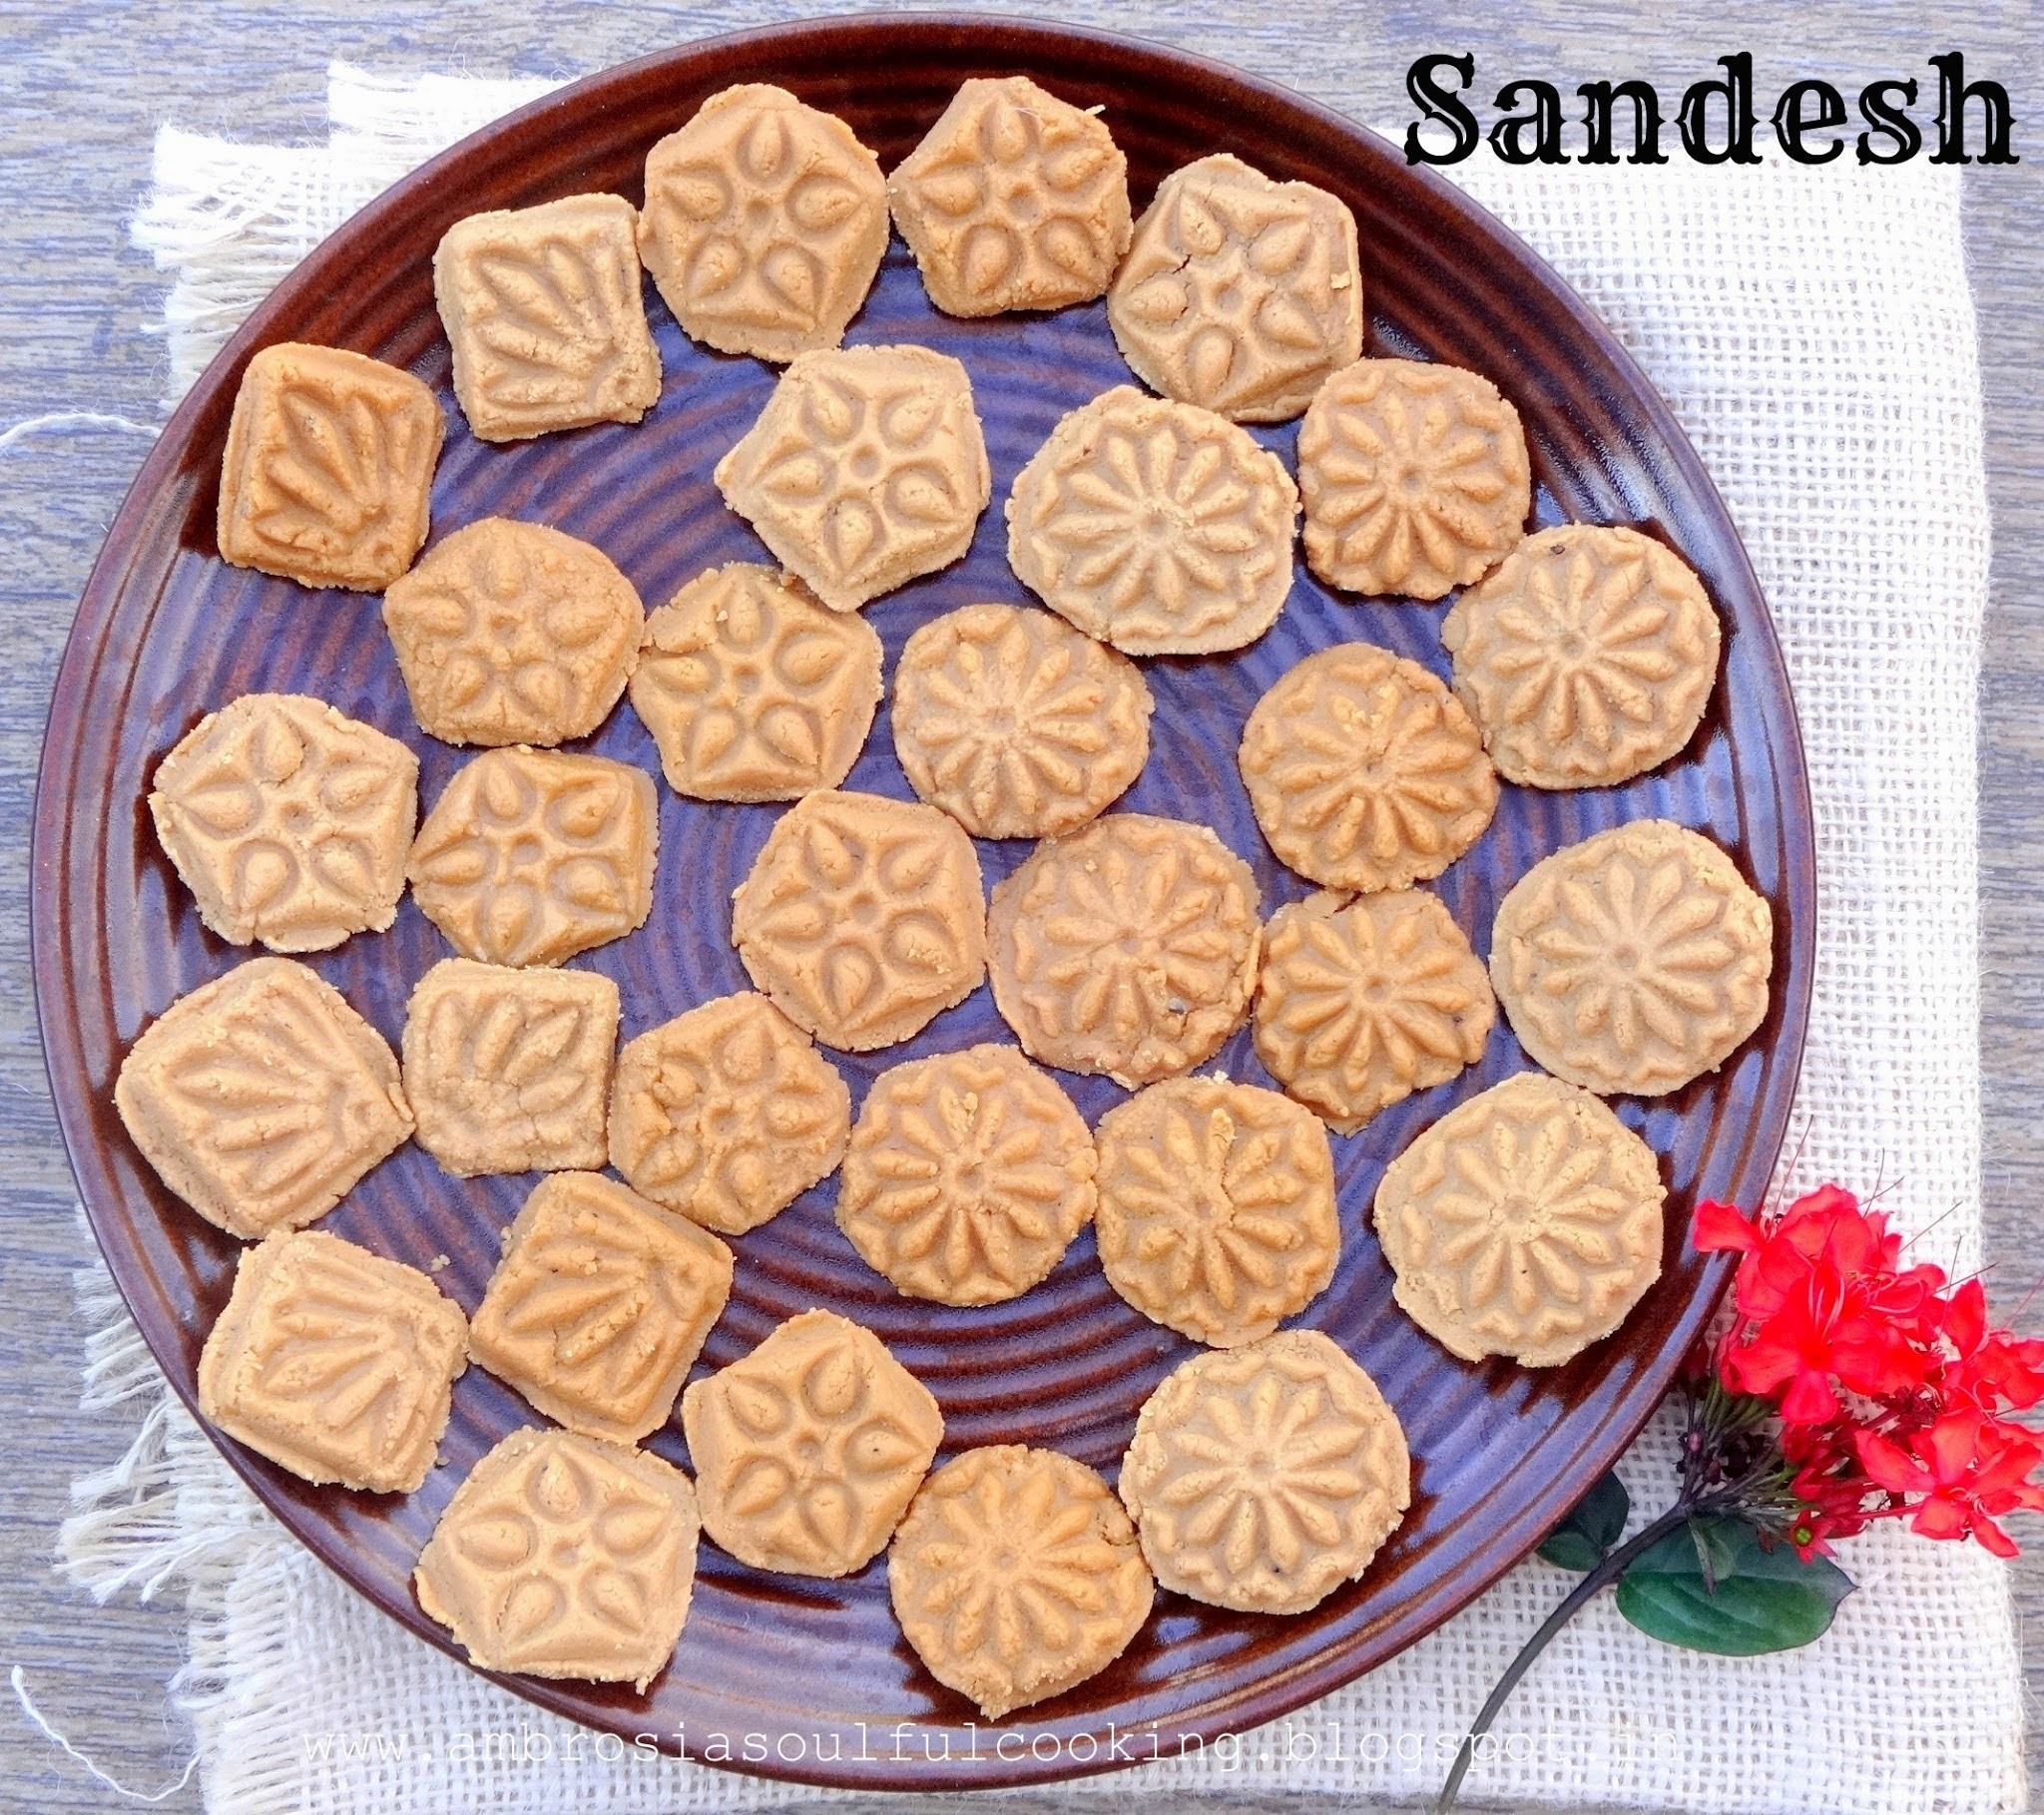 Nolen Gur Sandesh | Sandesh with Date Palm Jaggery